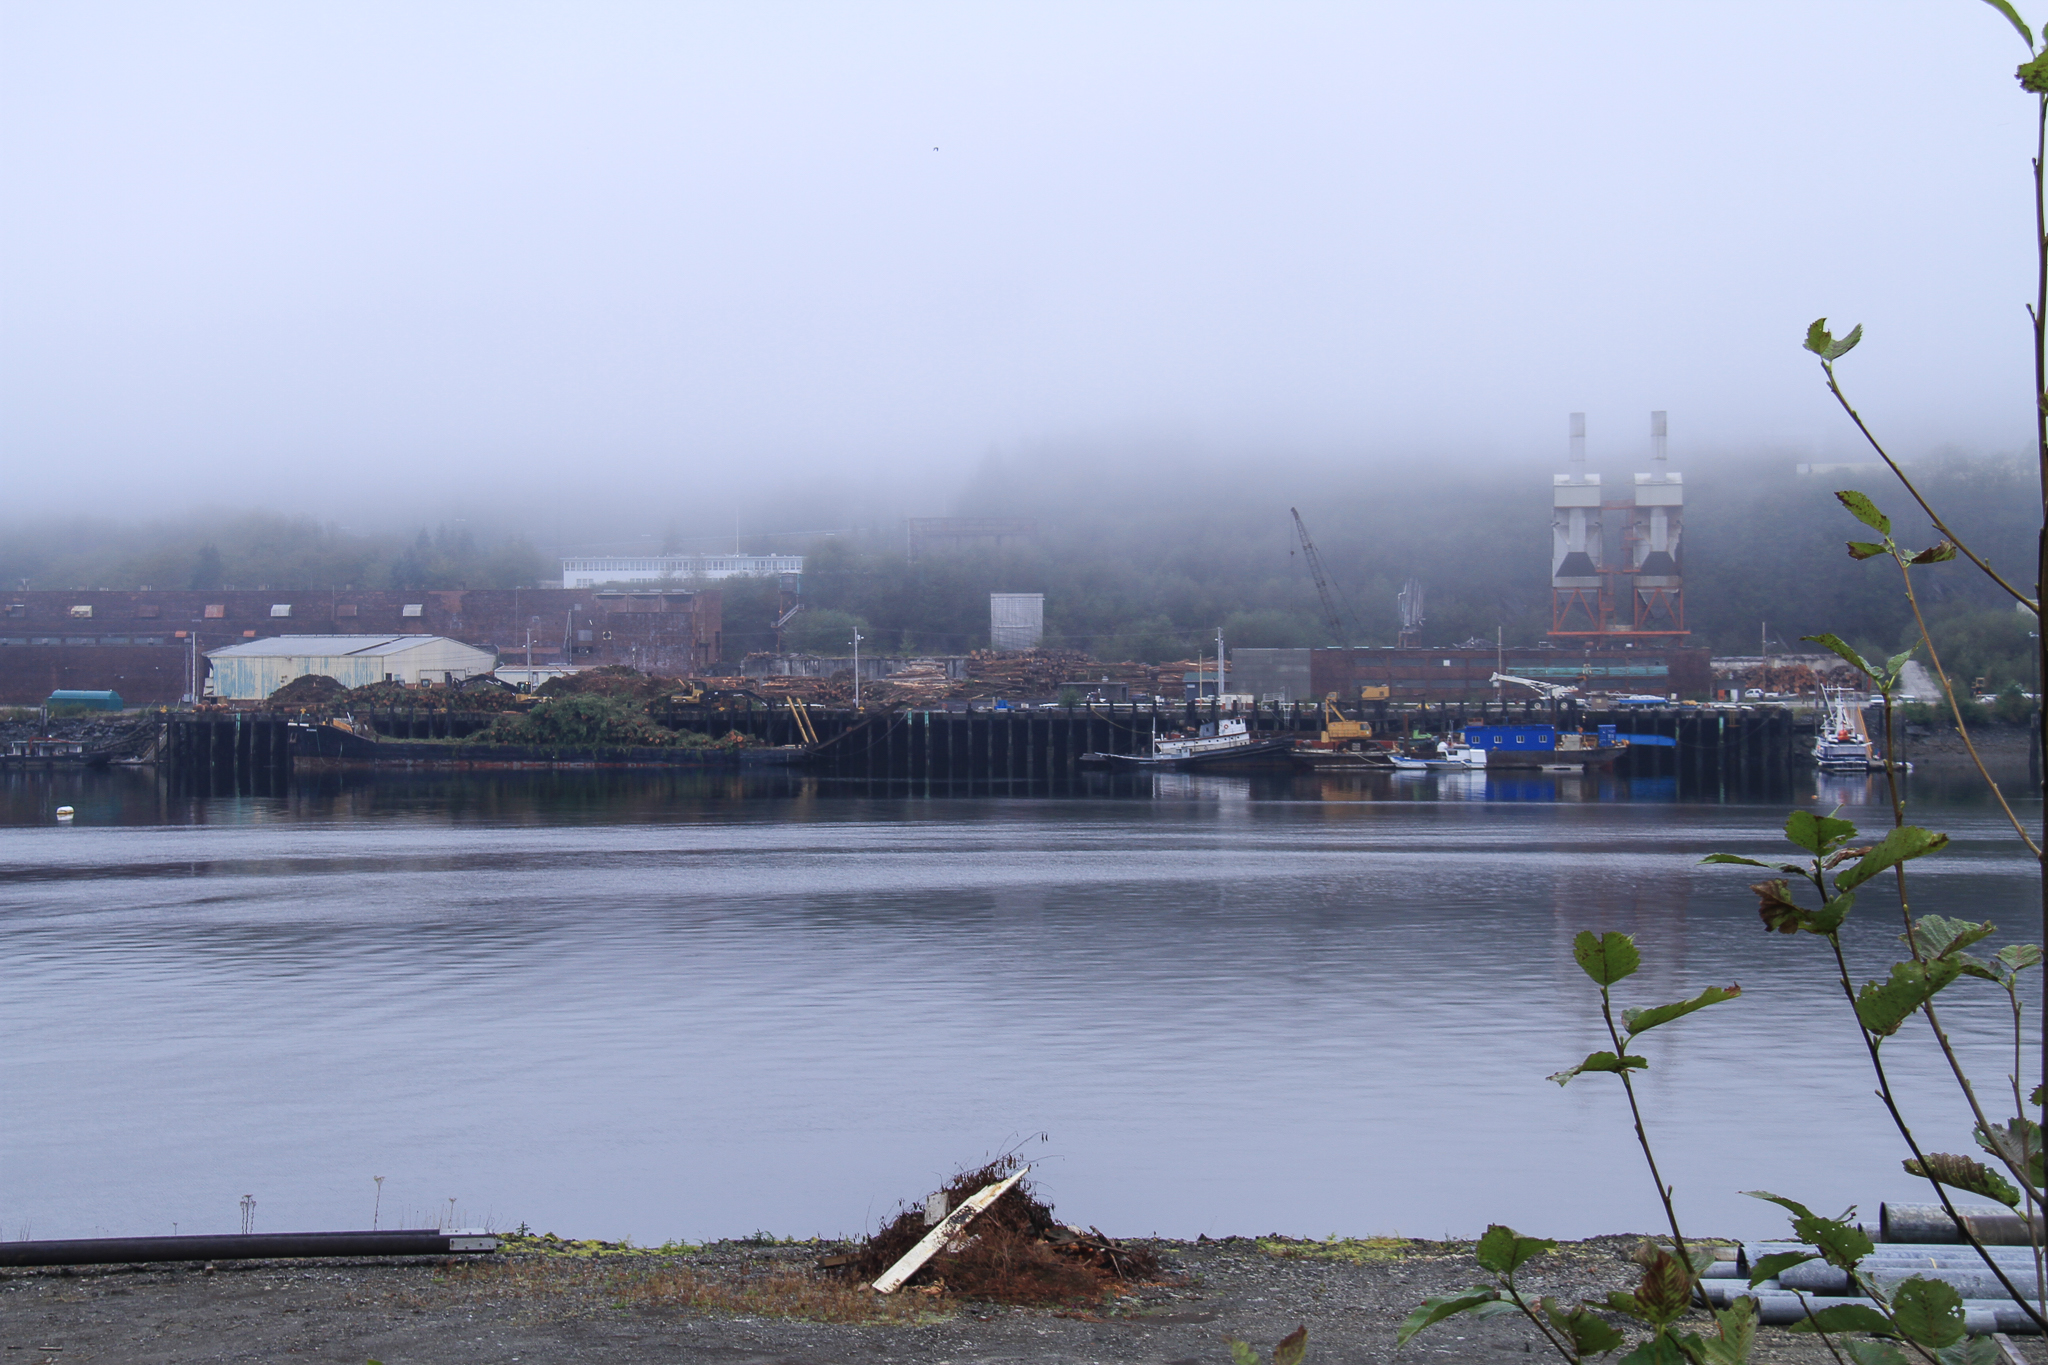 The former site of the Ketchikan Pulp Company, outside of Ketchikan – one of two giant pulp mills that used to consume Tongass National Forest logs until both shuttered in the 1990s.